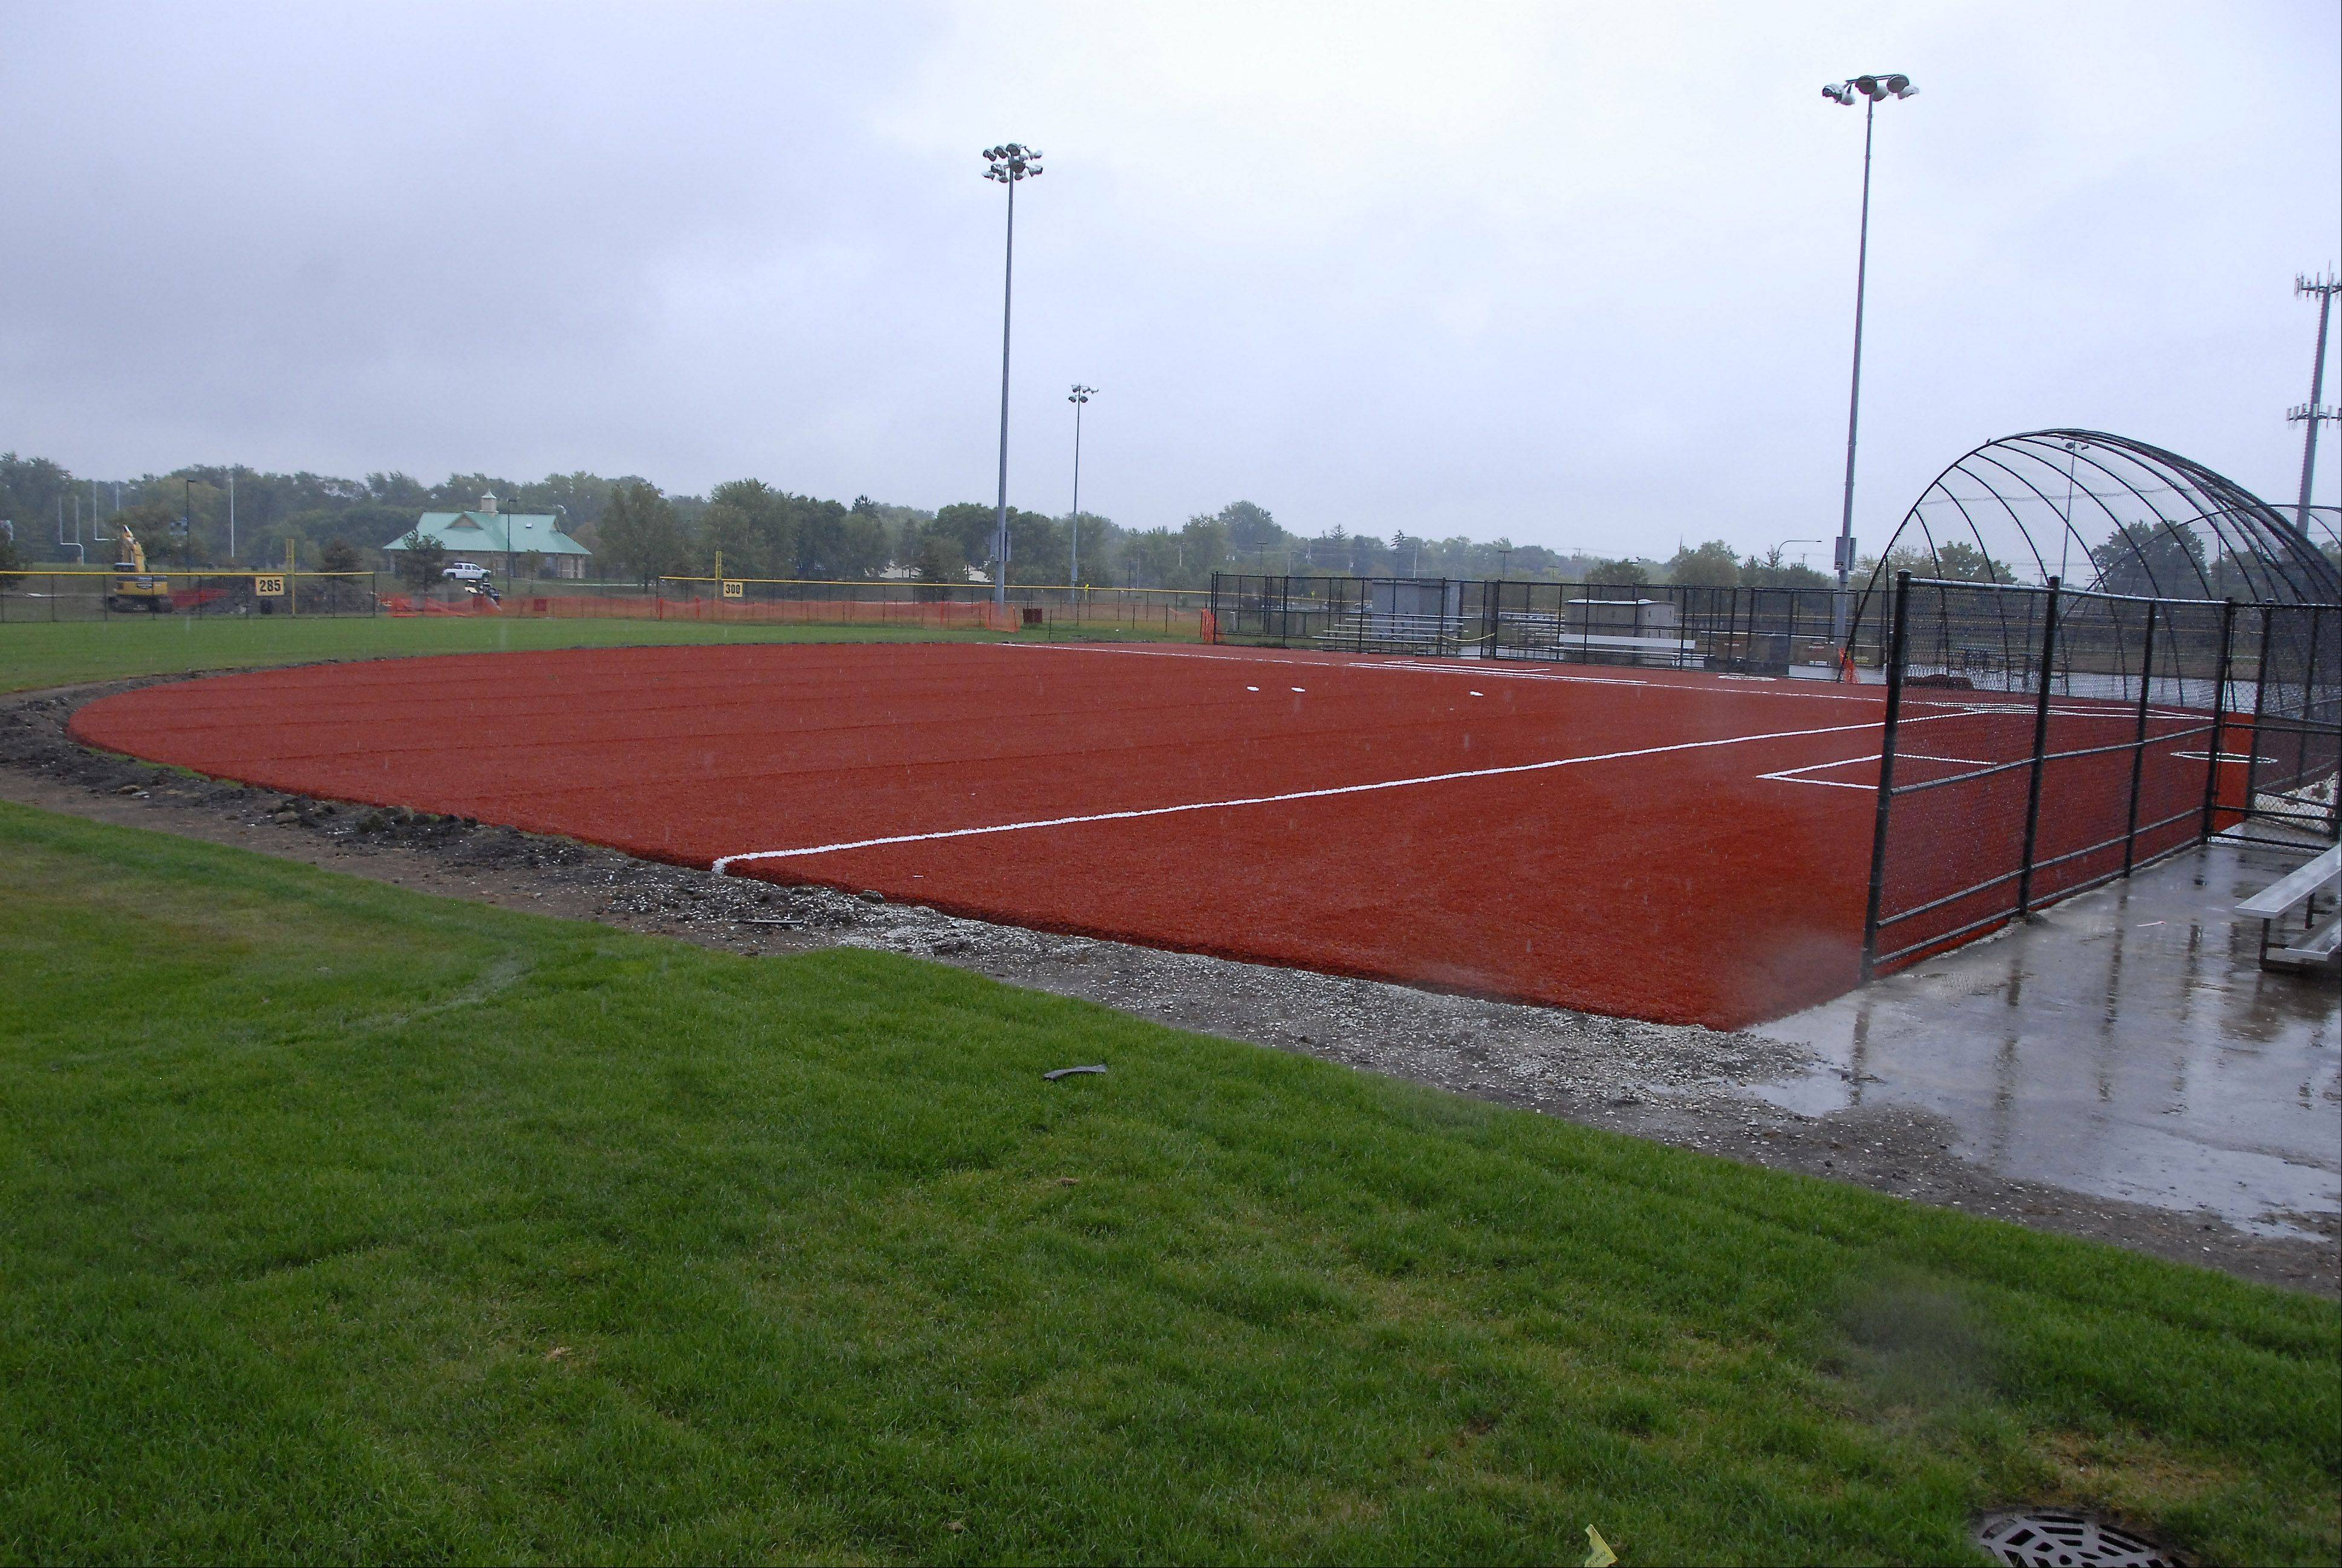 The Arlington Heights Park District has already installed new field turf on two of its four baseball and softball fields at Melas Park in Mount Prospect. Officials say the new turf will offer a safer playing surface while also reducing rainouts.